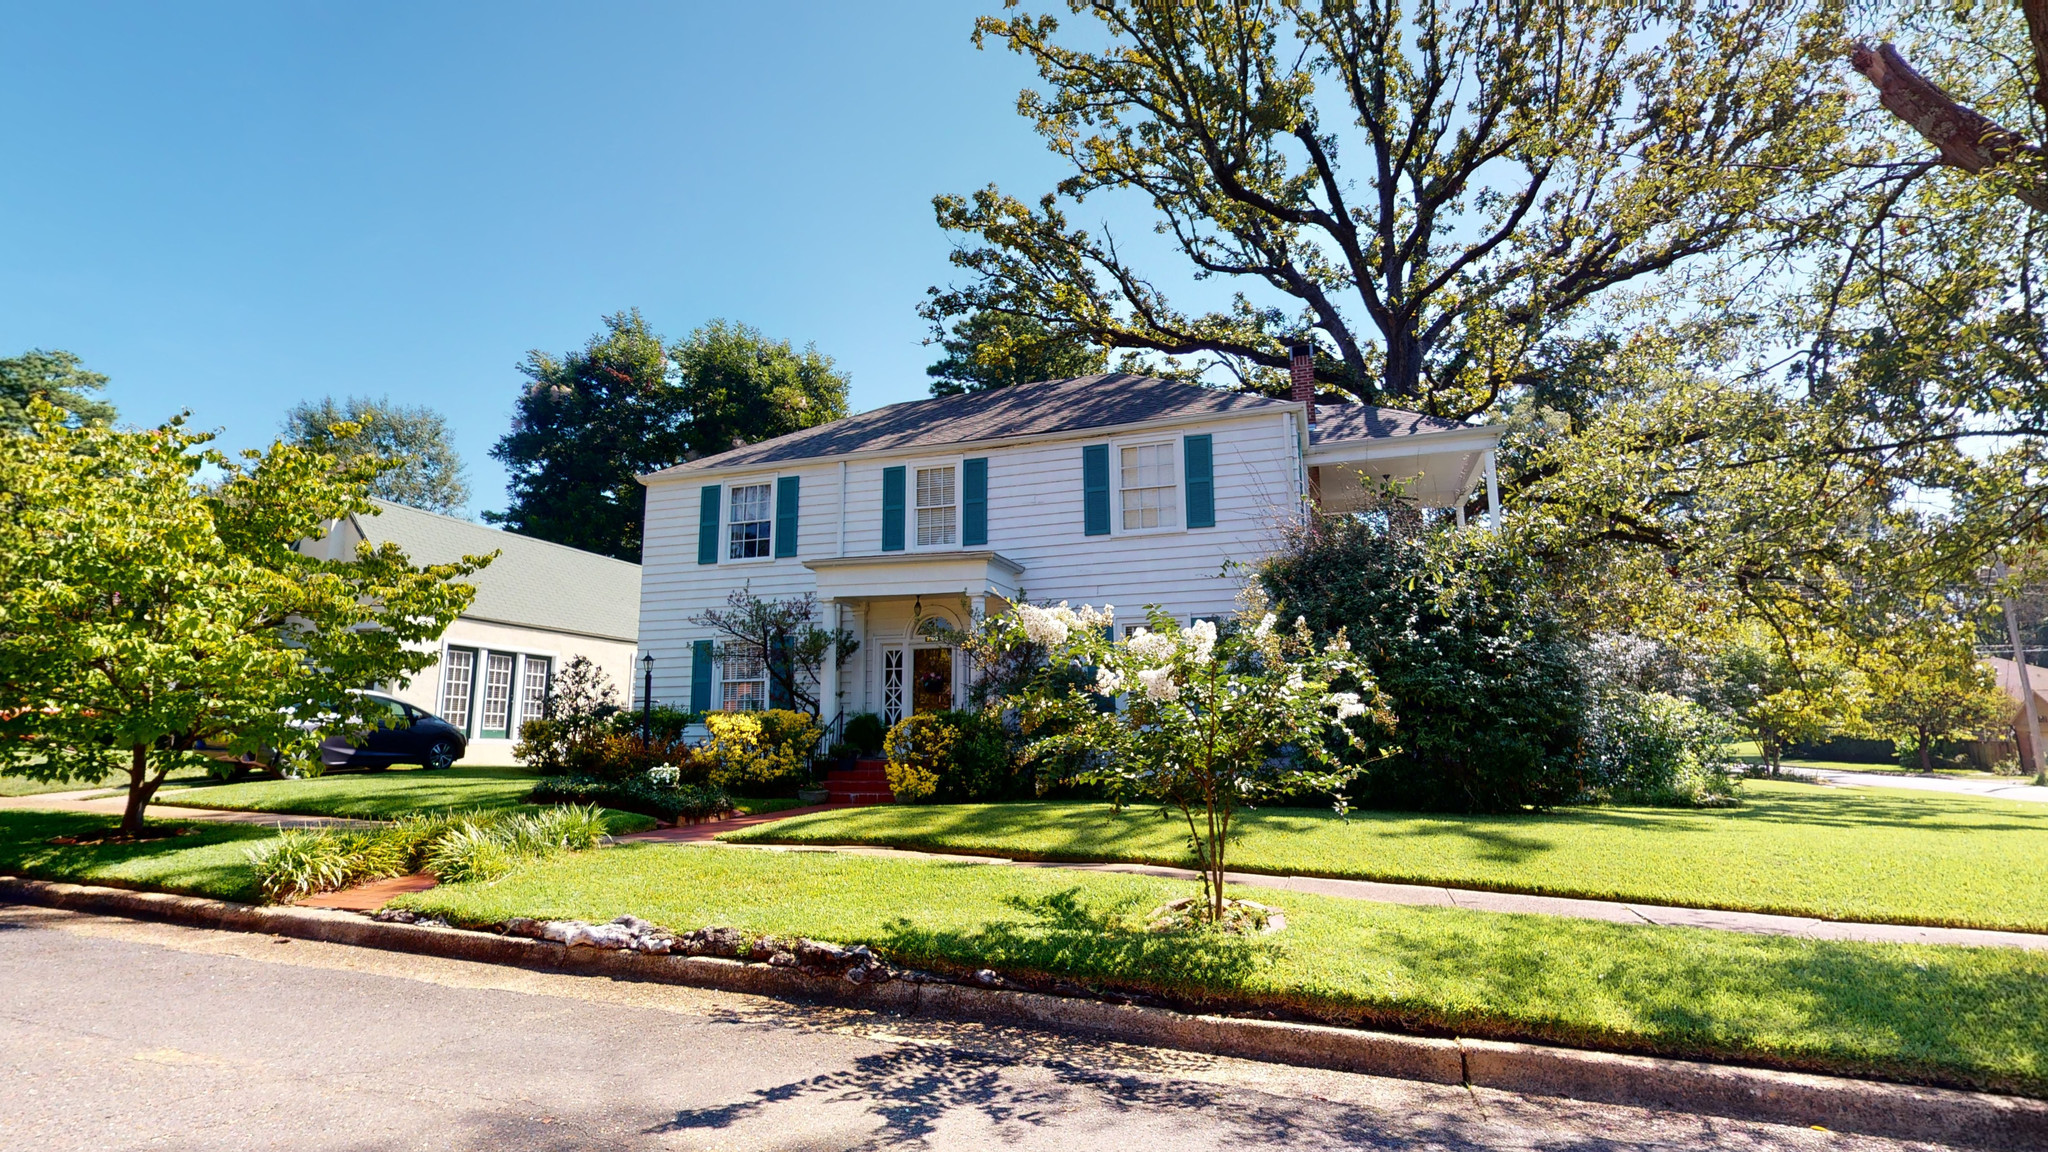 4-Bedroom House In Smith Burke Historic District